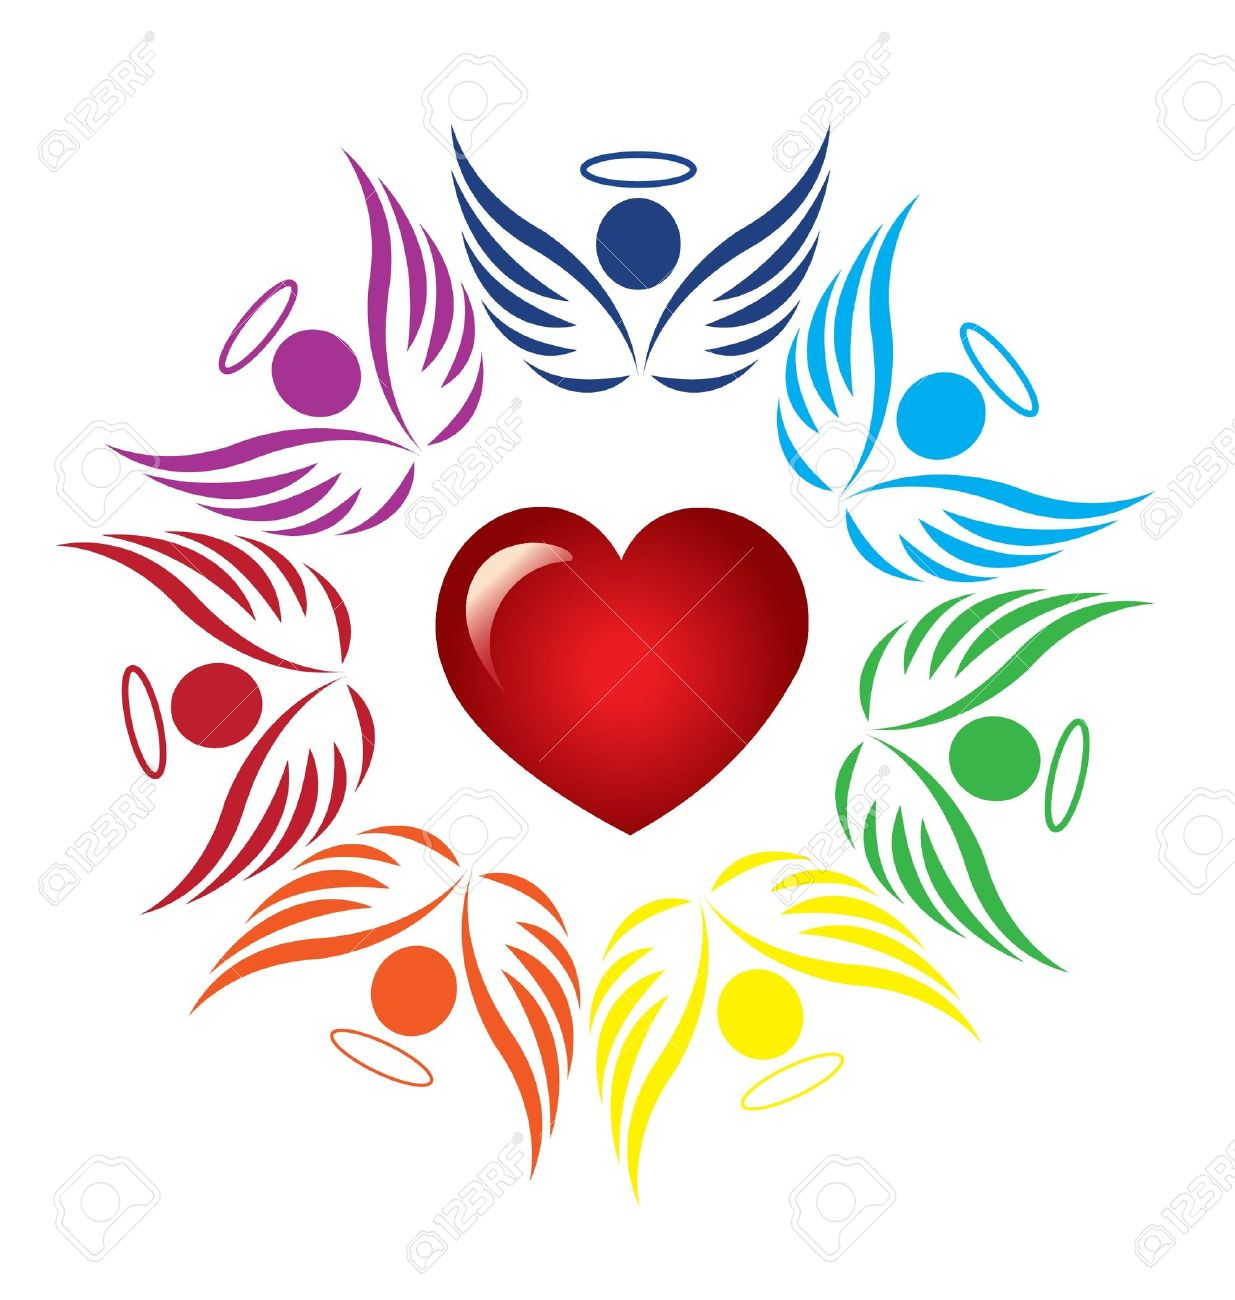 Heart stock illustration royalty free illustrations stock clip art - Teamwork Angels Around Heart Icon Vector Stock Vector 19214760